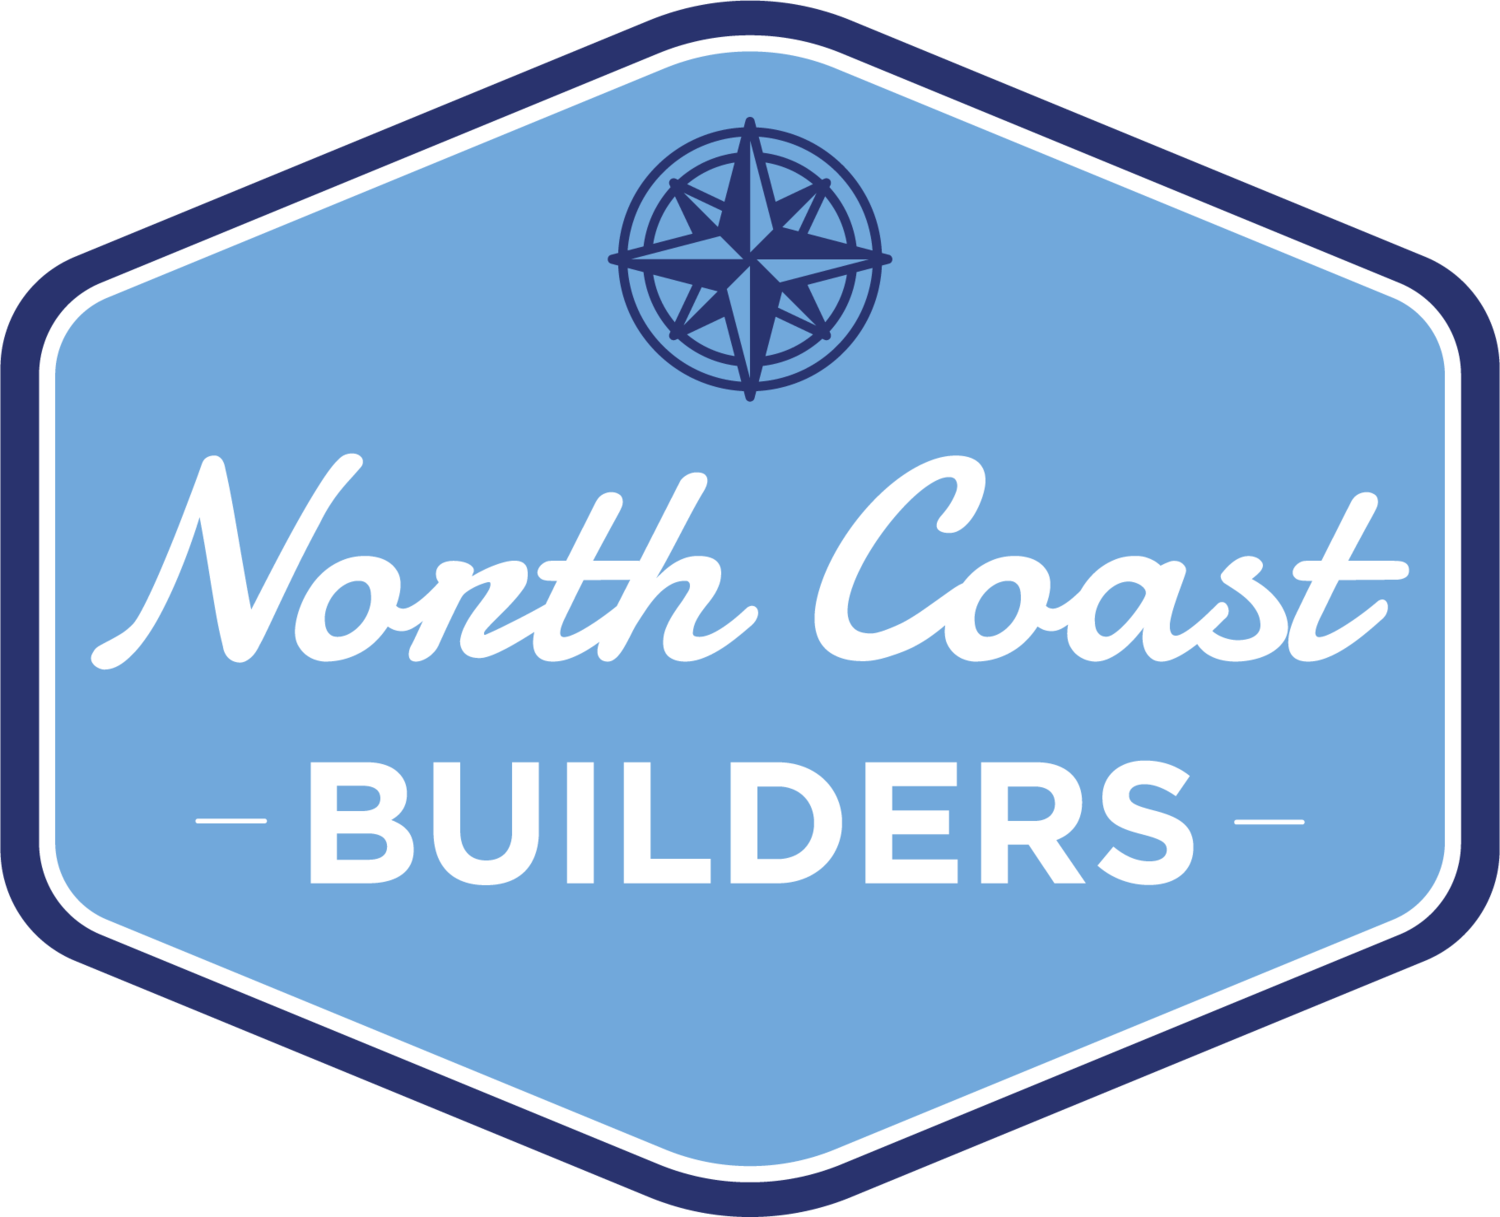 North Coast Builders Co.